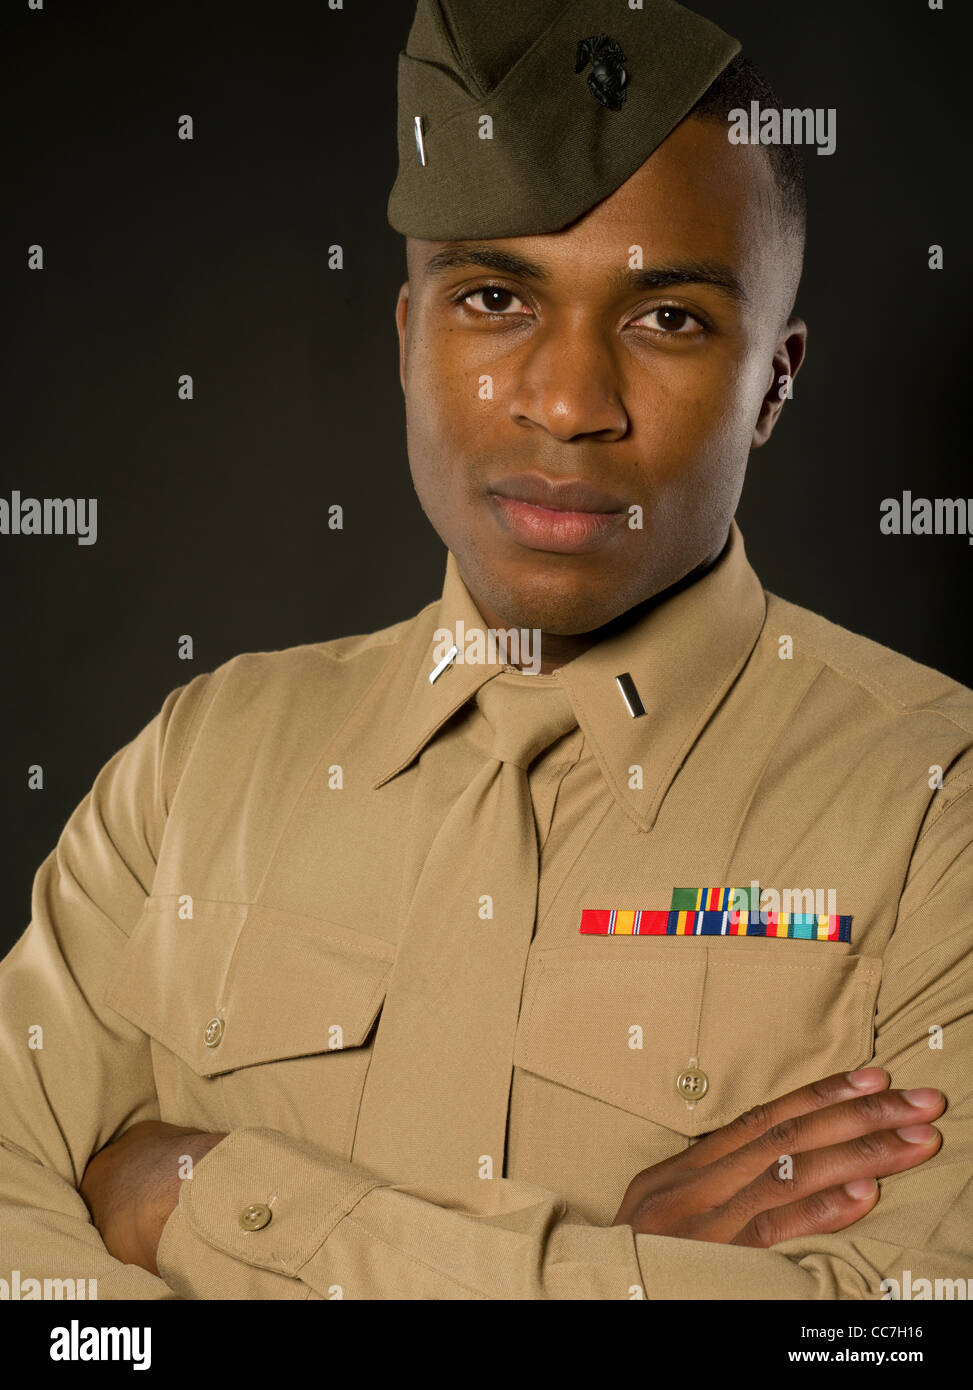 united states marine corps officer in service b bravos uniform stock photo royalty free. Black Bedroom Furniture Sets. Home Design Ideas